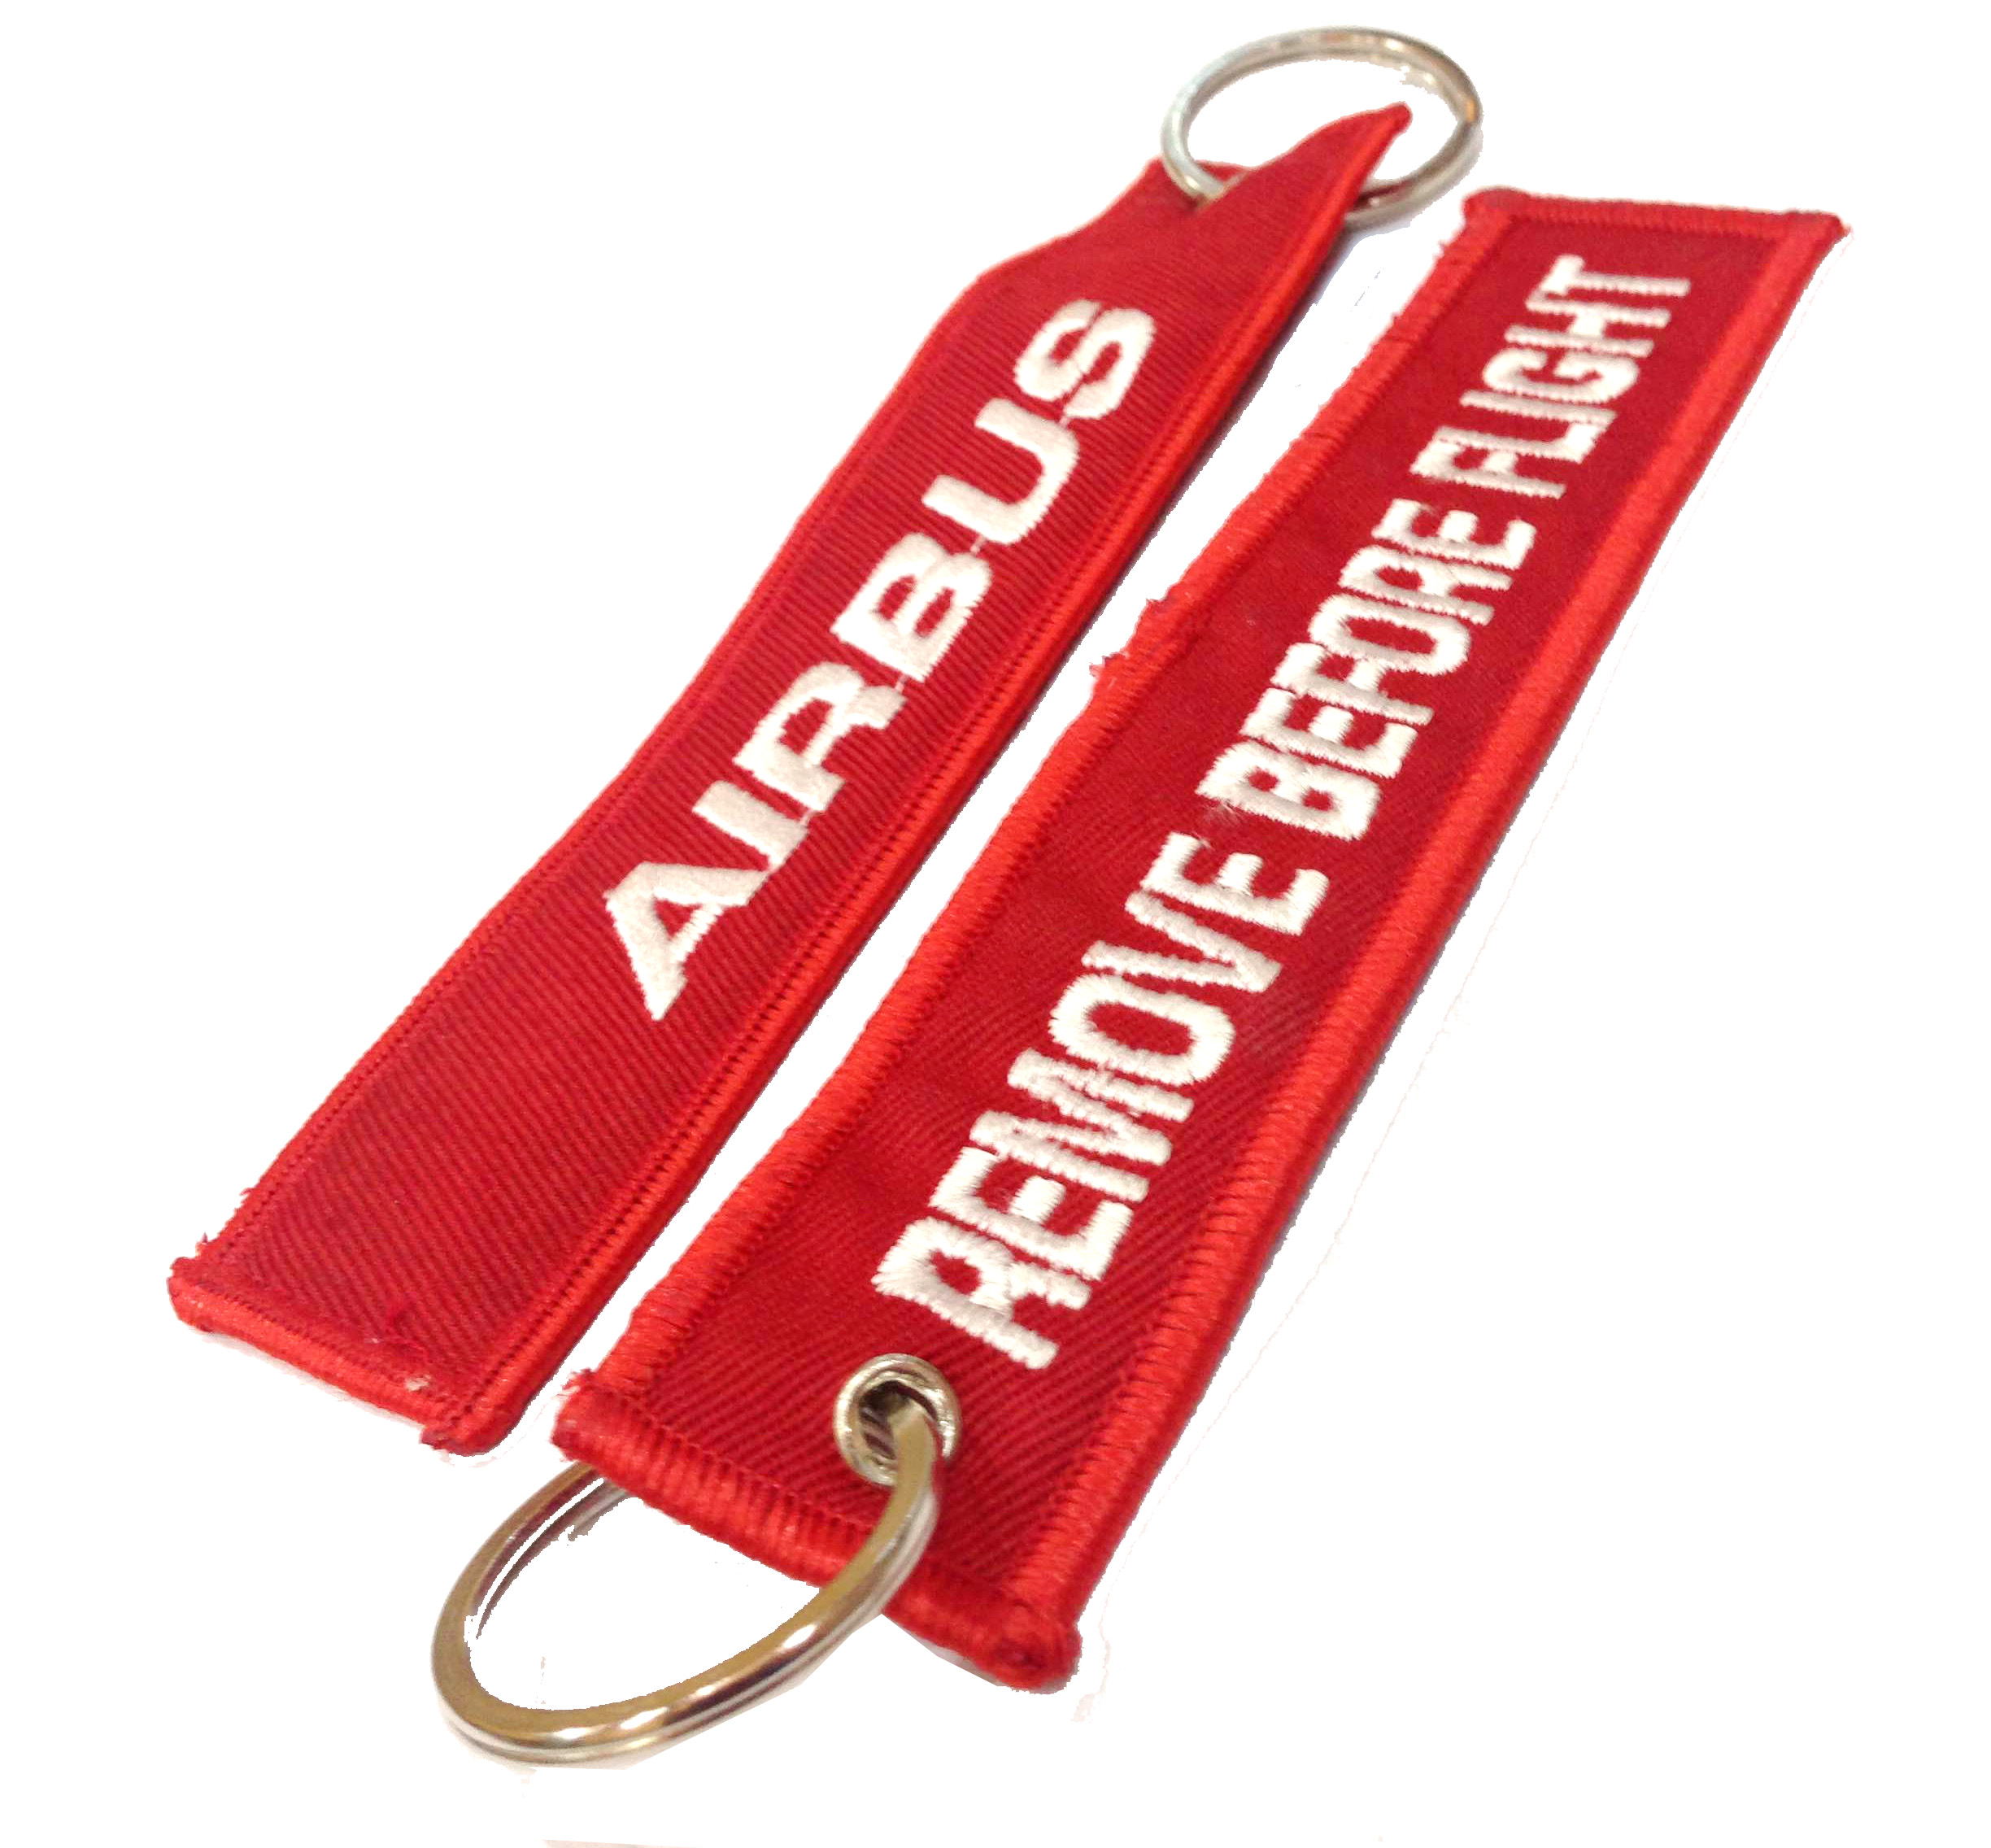 Airbus-Remove Before Flight Keychain